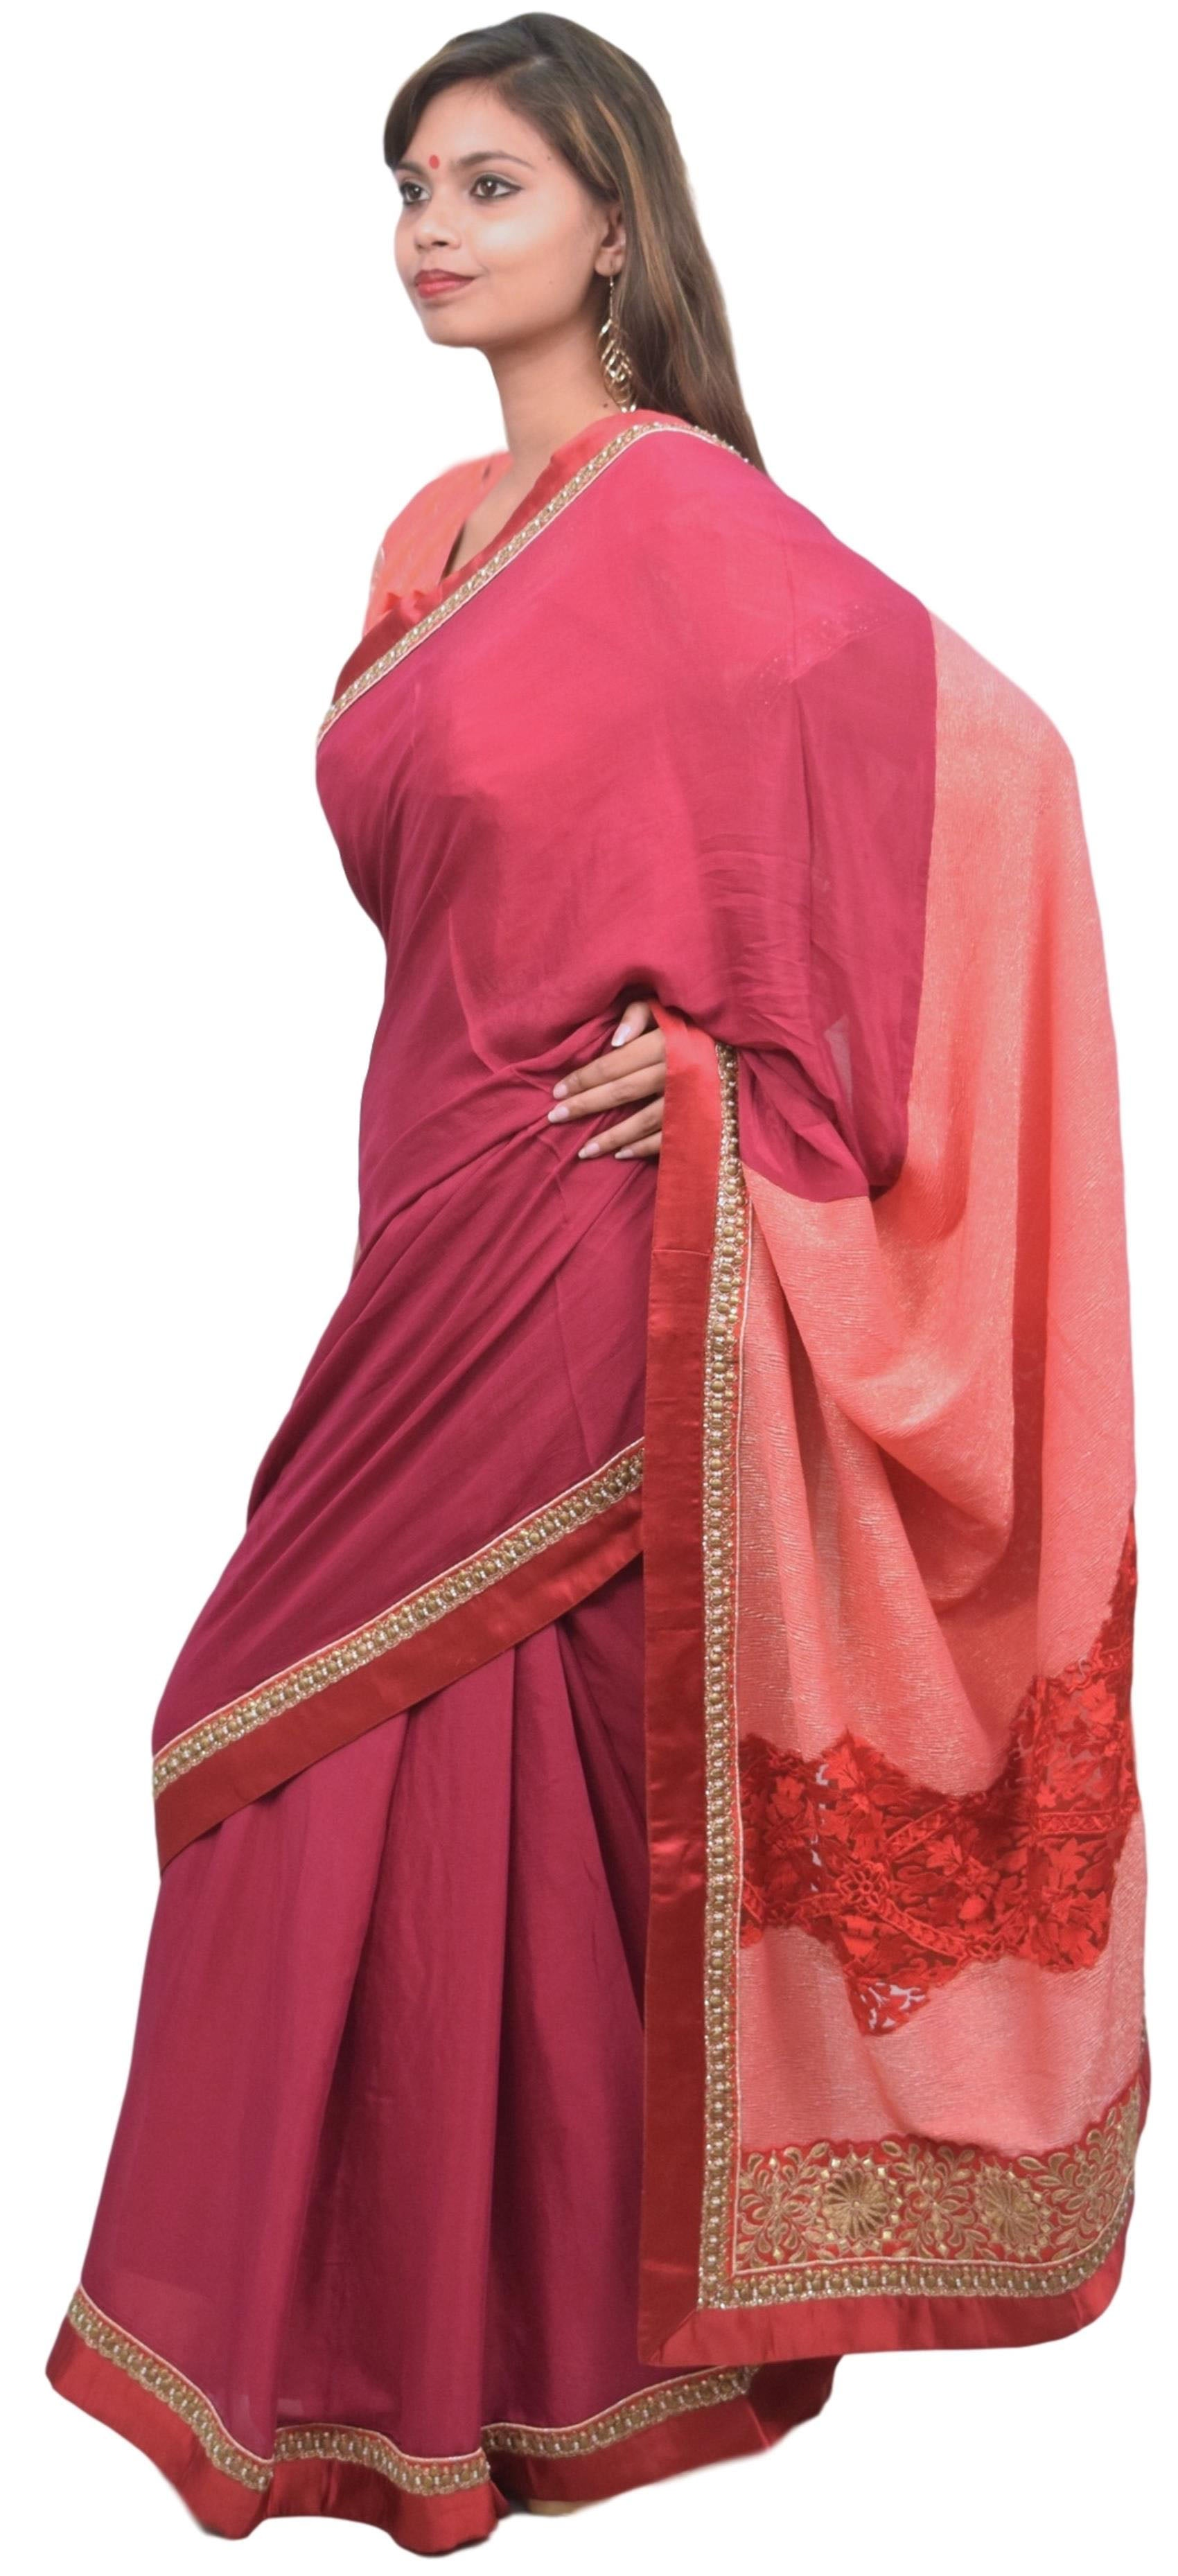 Pink & Wine Designer Georgette (Viscos) Hand Embroidery Zari Sequence Thread Stone Beads Work Saree Sari With Stylish Stitched Blouse